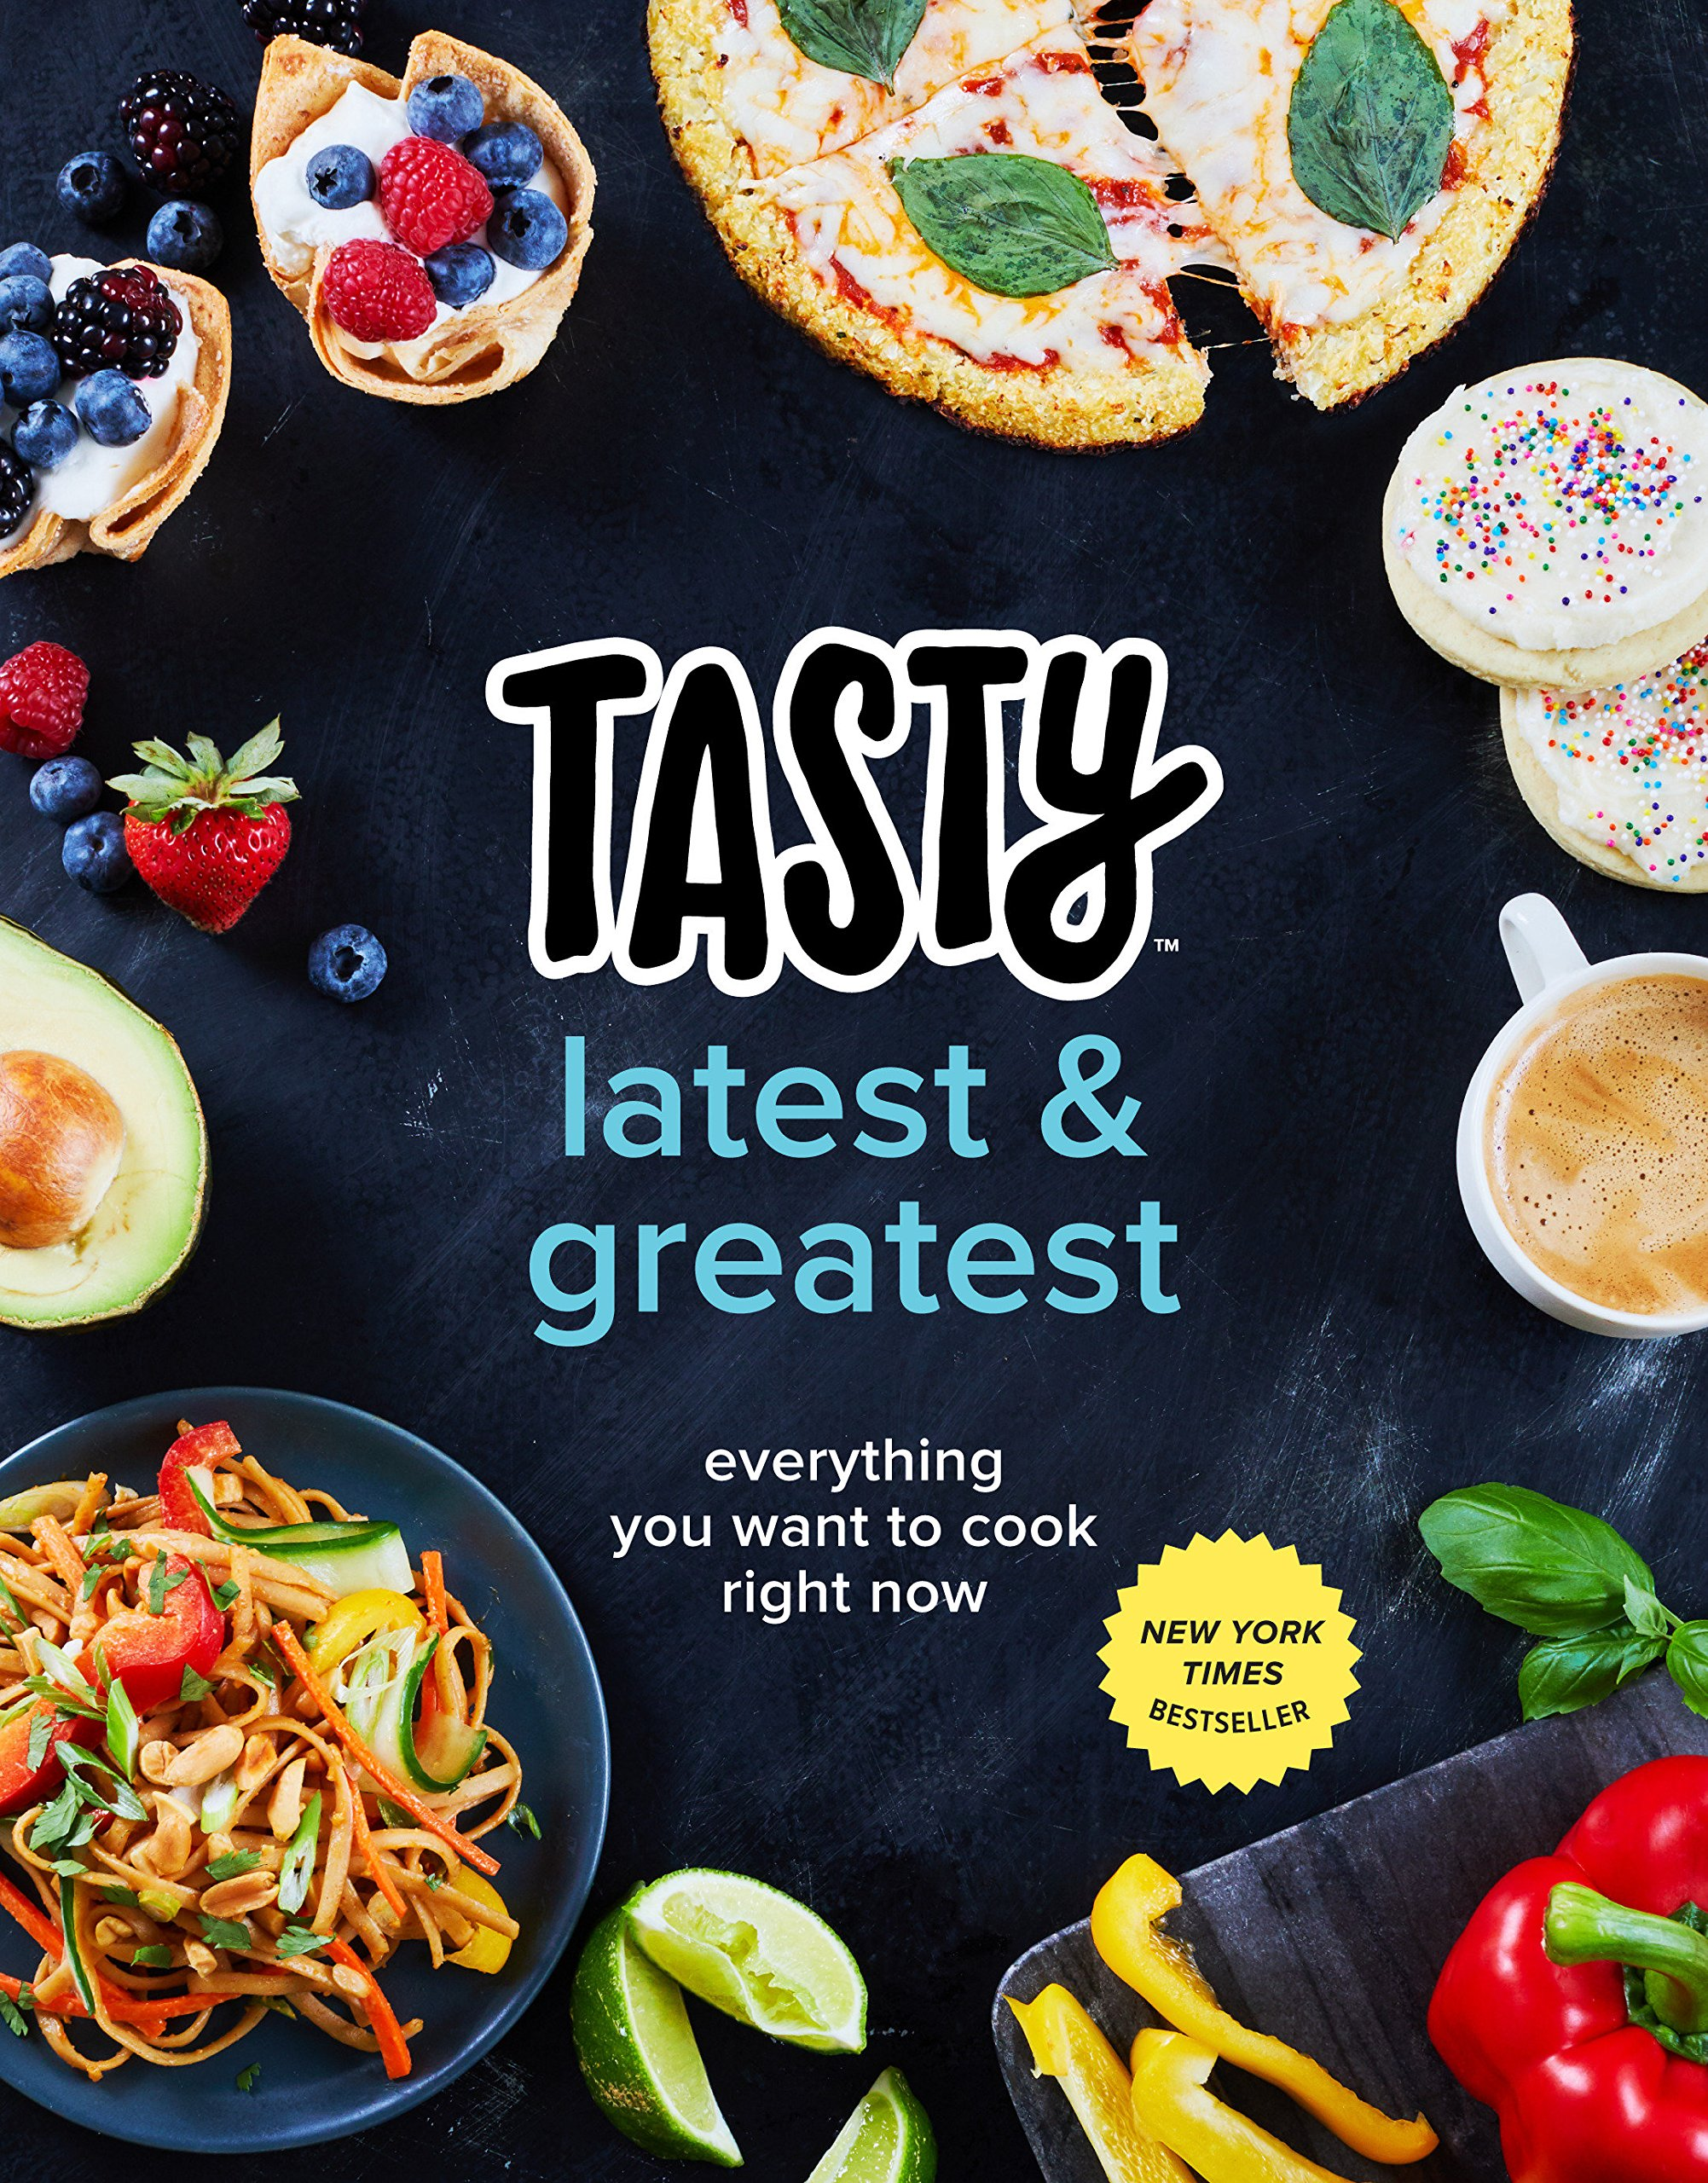 Tasty Latest and Greatest: Everything You Want to Cook Right Now (An Official Tasty Cookbook) by Clarkson Potter